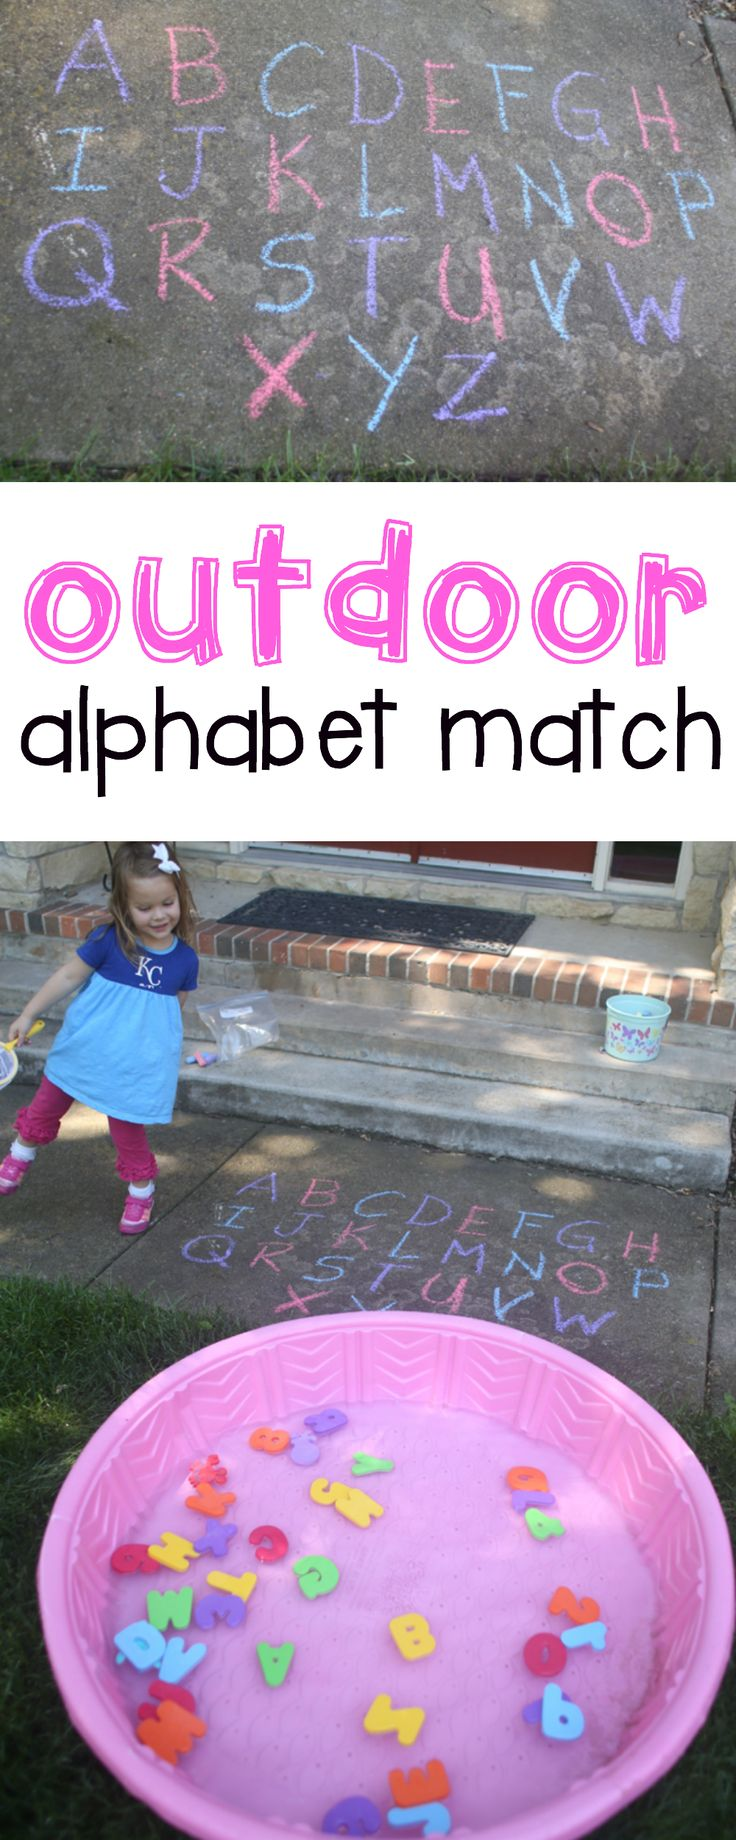 Maybe up the game with sight words! Outdoor Alphabet Match for Toddlers: Such a fun activity for teaching letter recognition to toddlers and preschoolers!